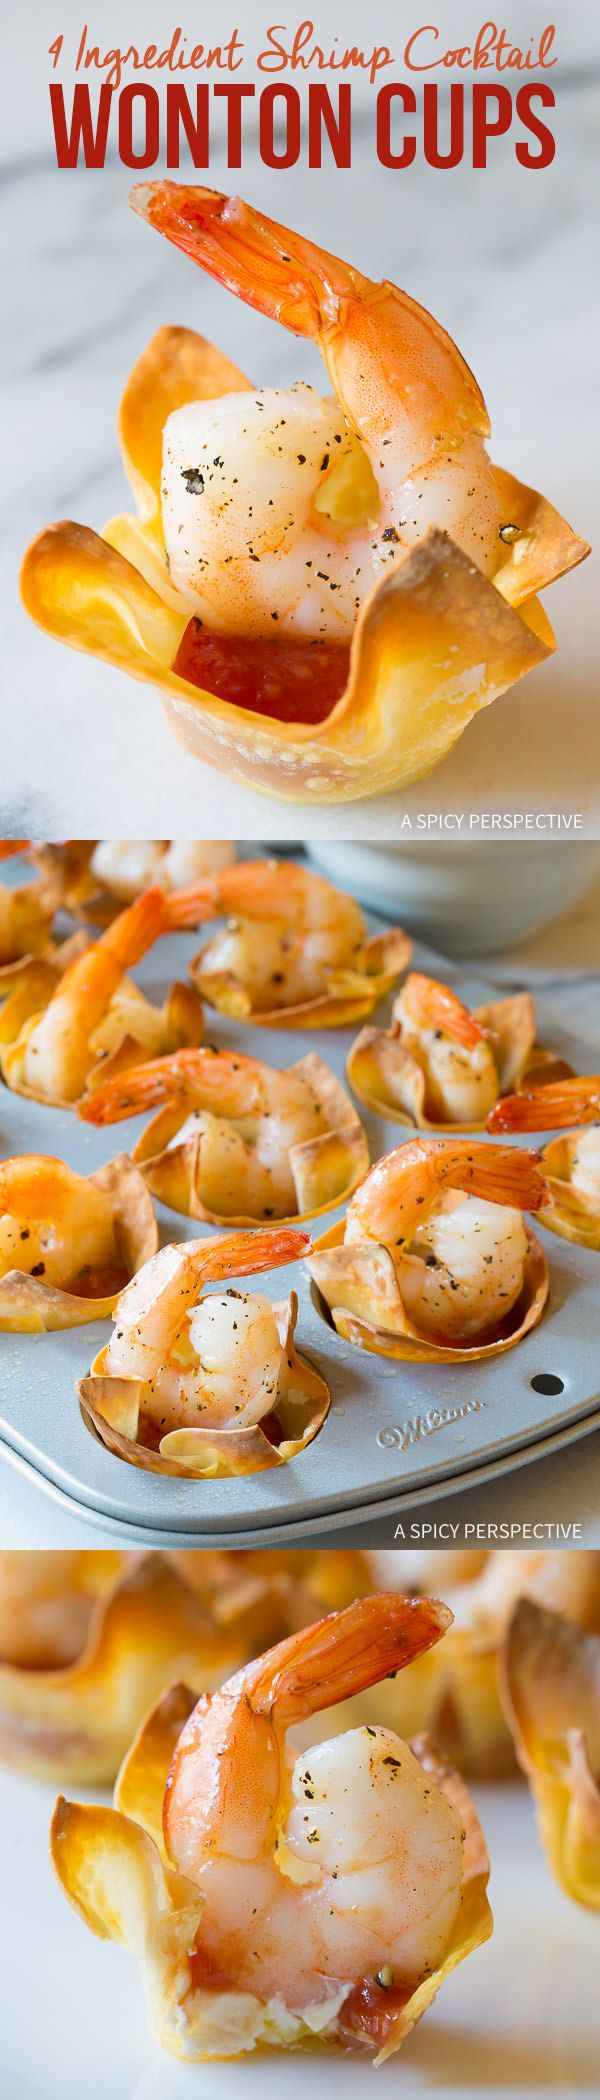 Fabulous 4-Ingredient Shrimp Cocktail Wonton Cups Recipe on ASpicyPerspective.com #holidays: